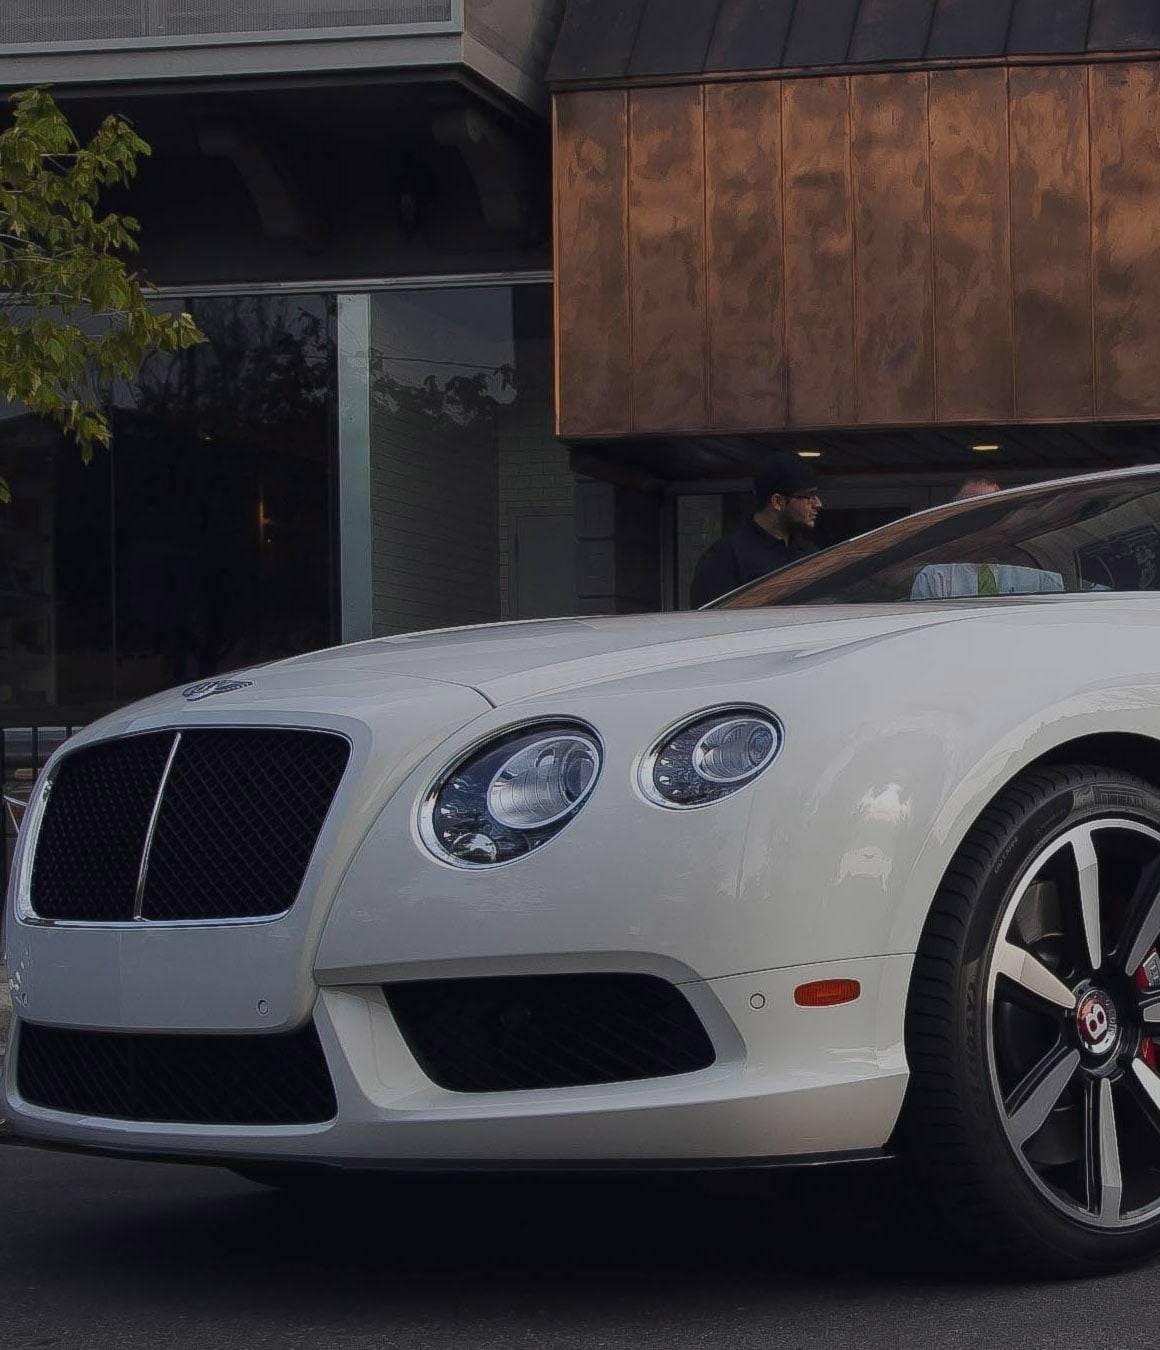 Compare Bentley insurance costs for all models